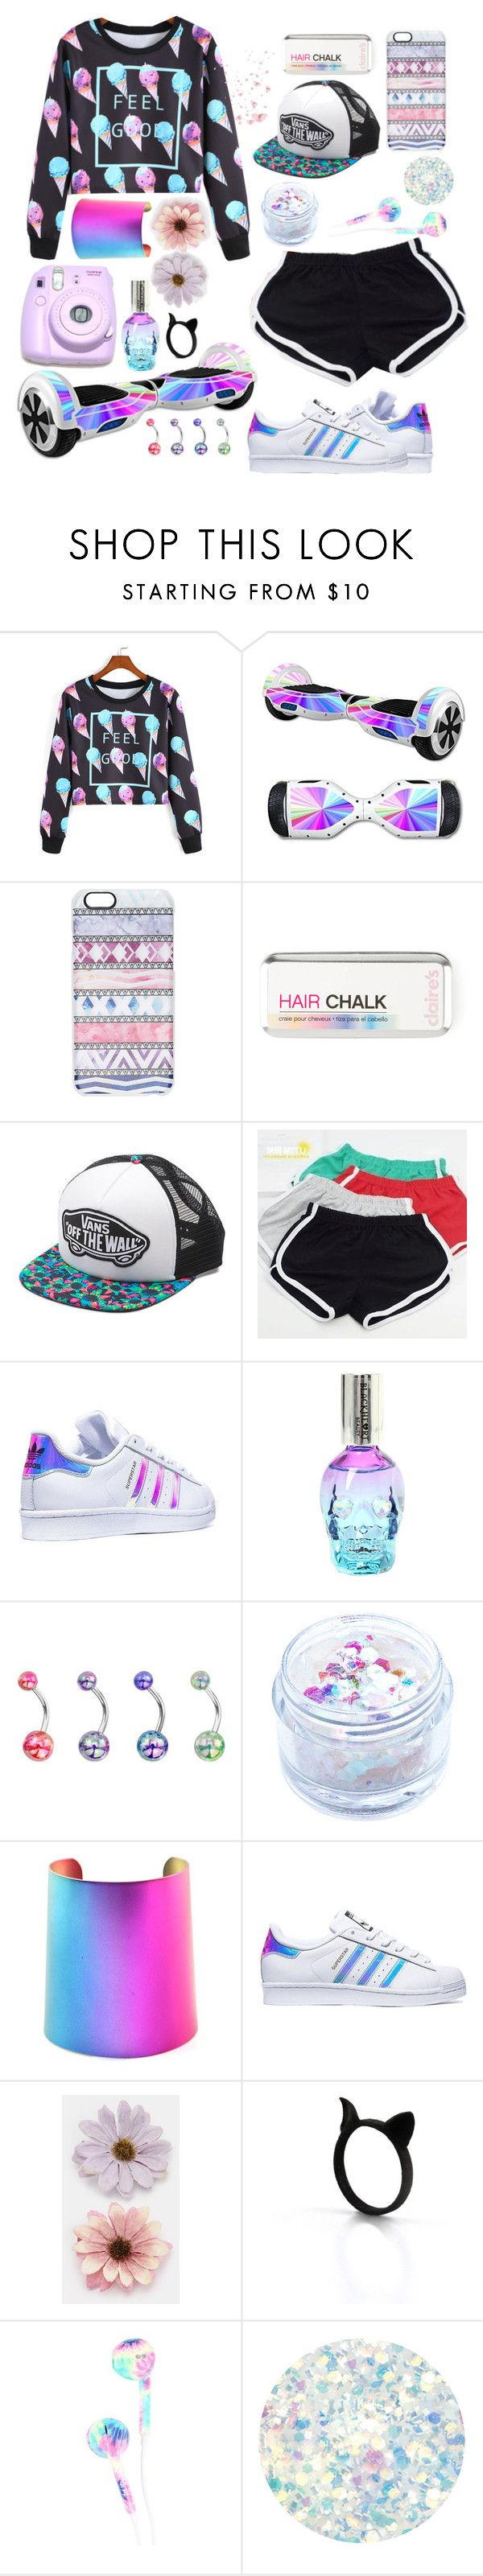 """rainbow!"" by valeboh ❤ liked on Polyvore featuring Casetify, Vans, MITU, adidas, In Your Dreams, Polaroid, ASOS and Deborah Lippmann"